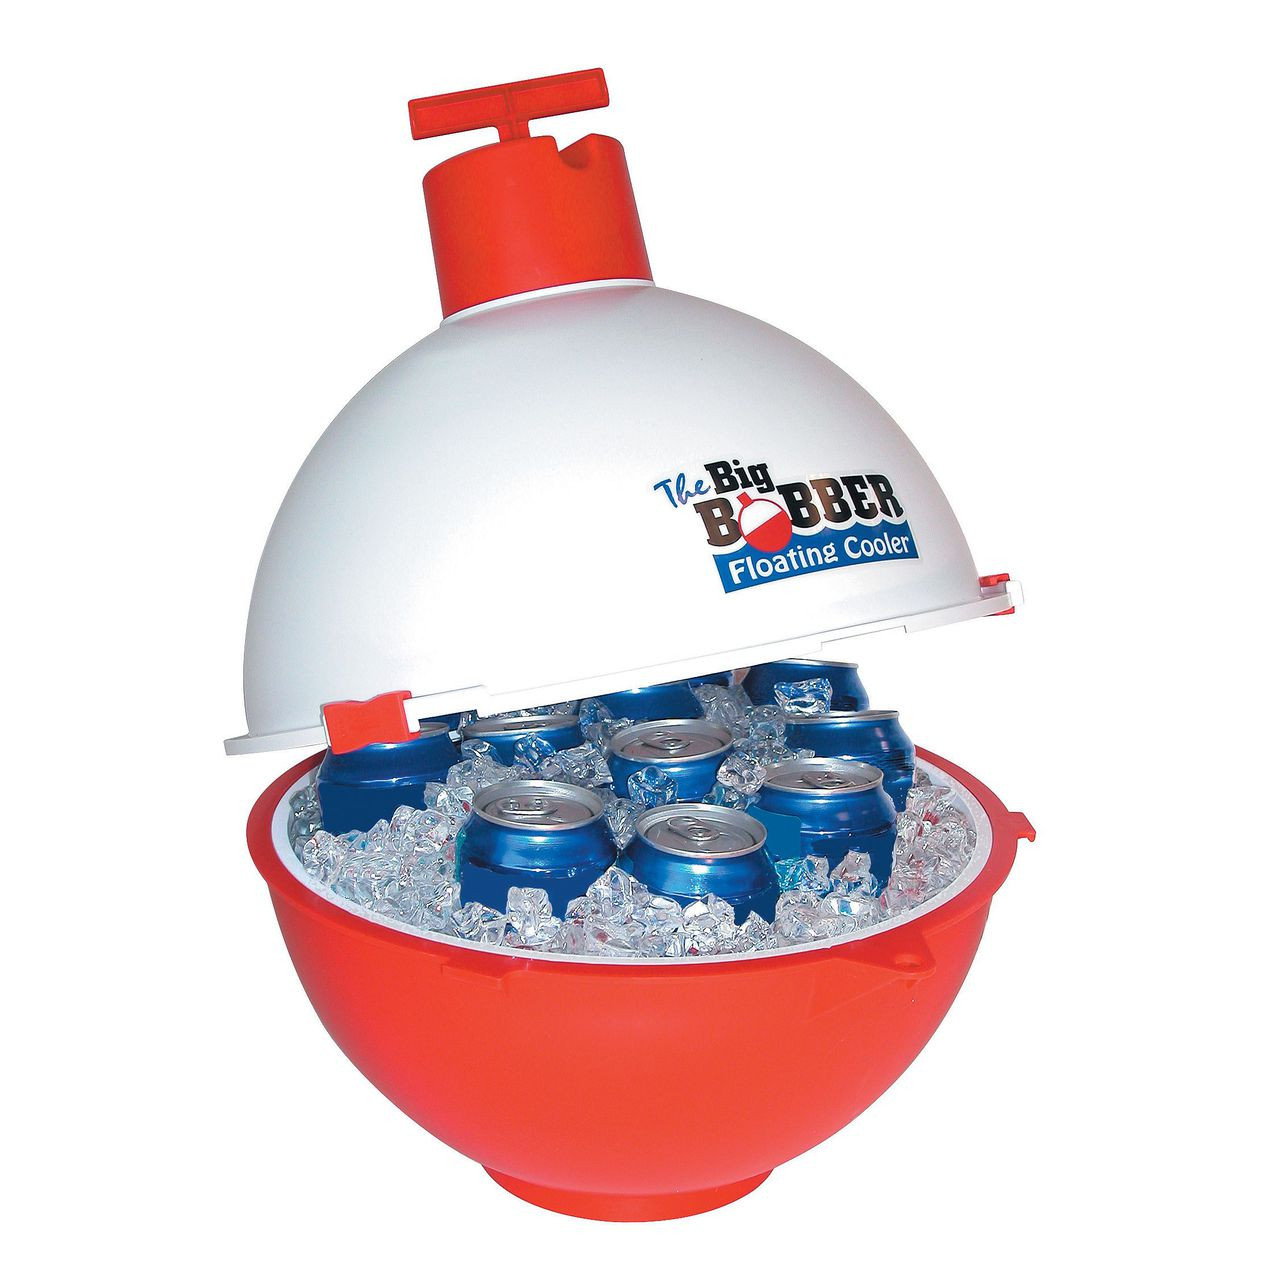 12 Can Big Bobber Floating Cooler Loading Zoom